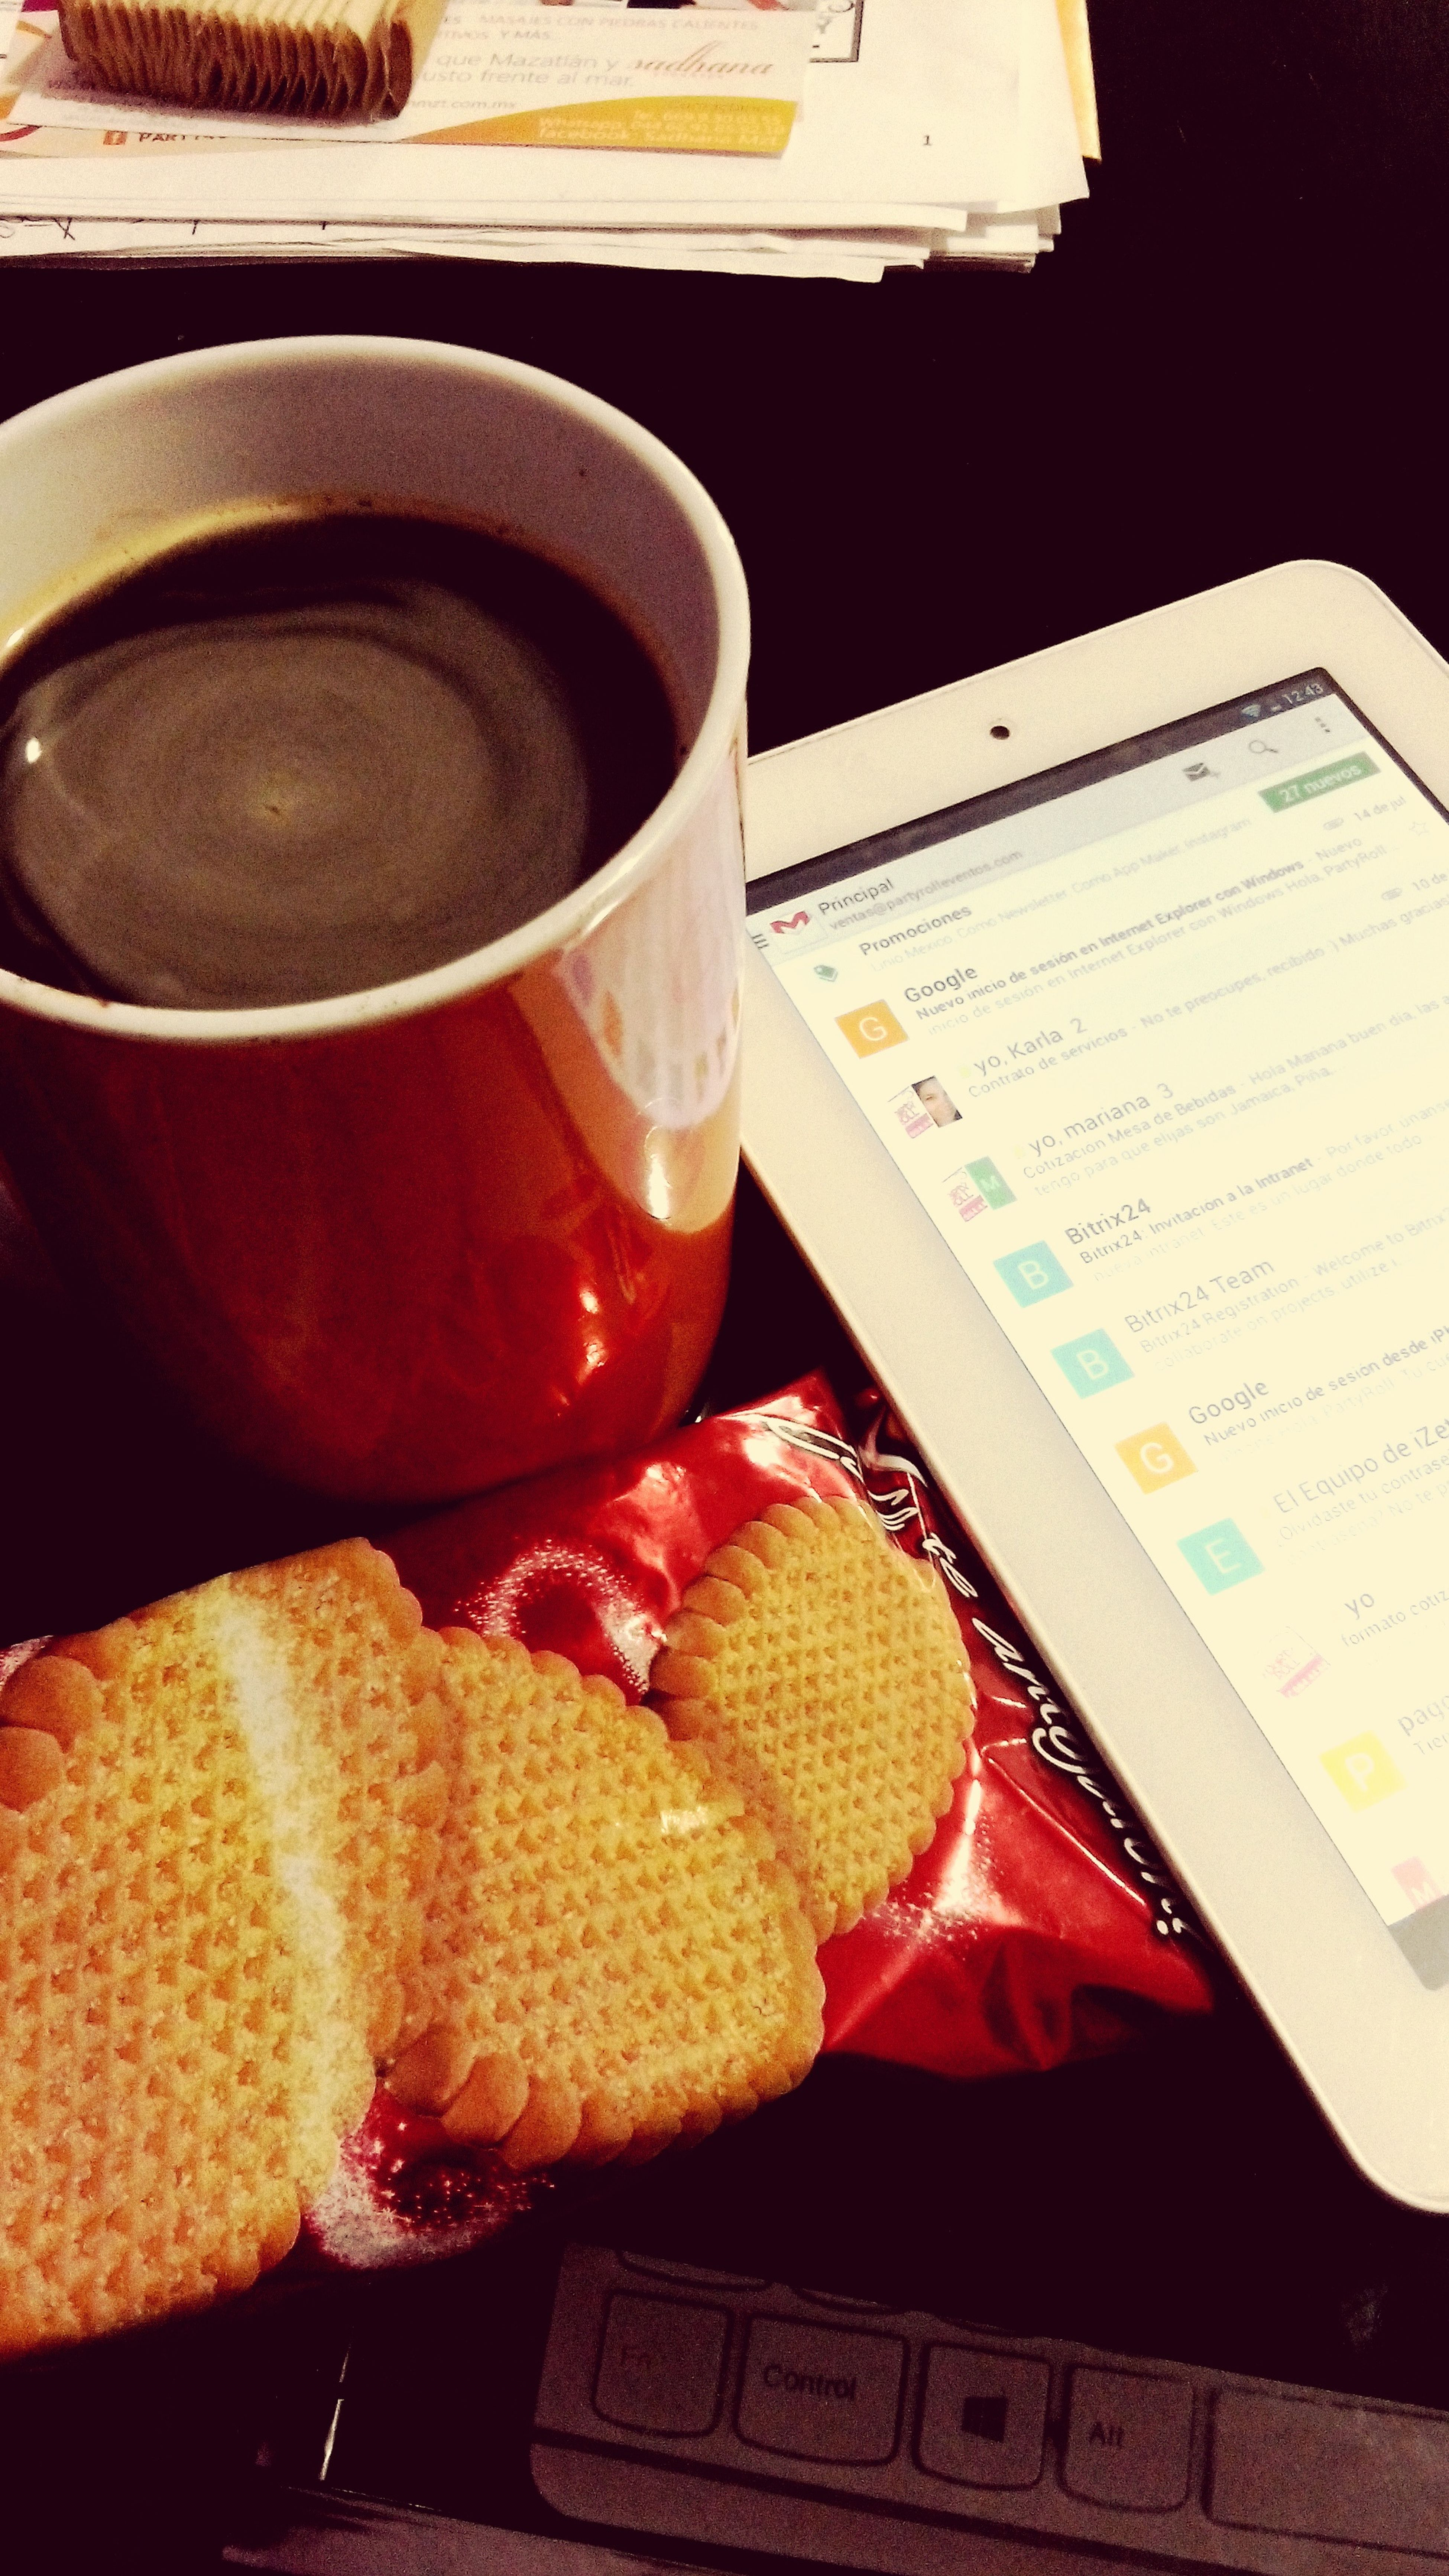 Its a good day to drink a cup of coffee while workin' Coffee Time Thoseonesarecookies Workingtime ILoveMyJob